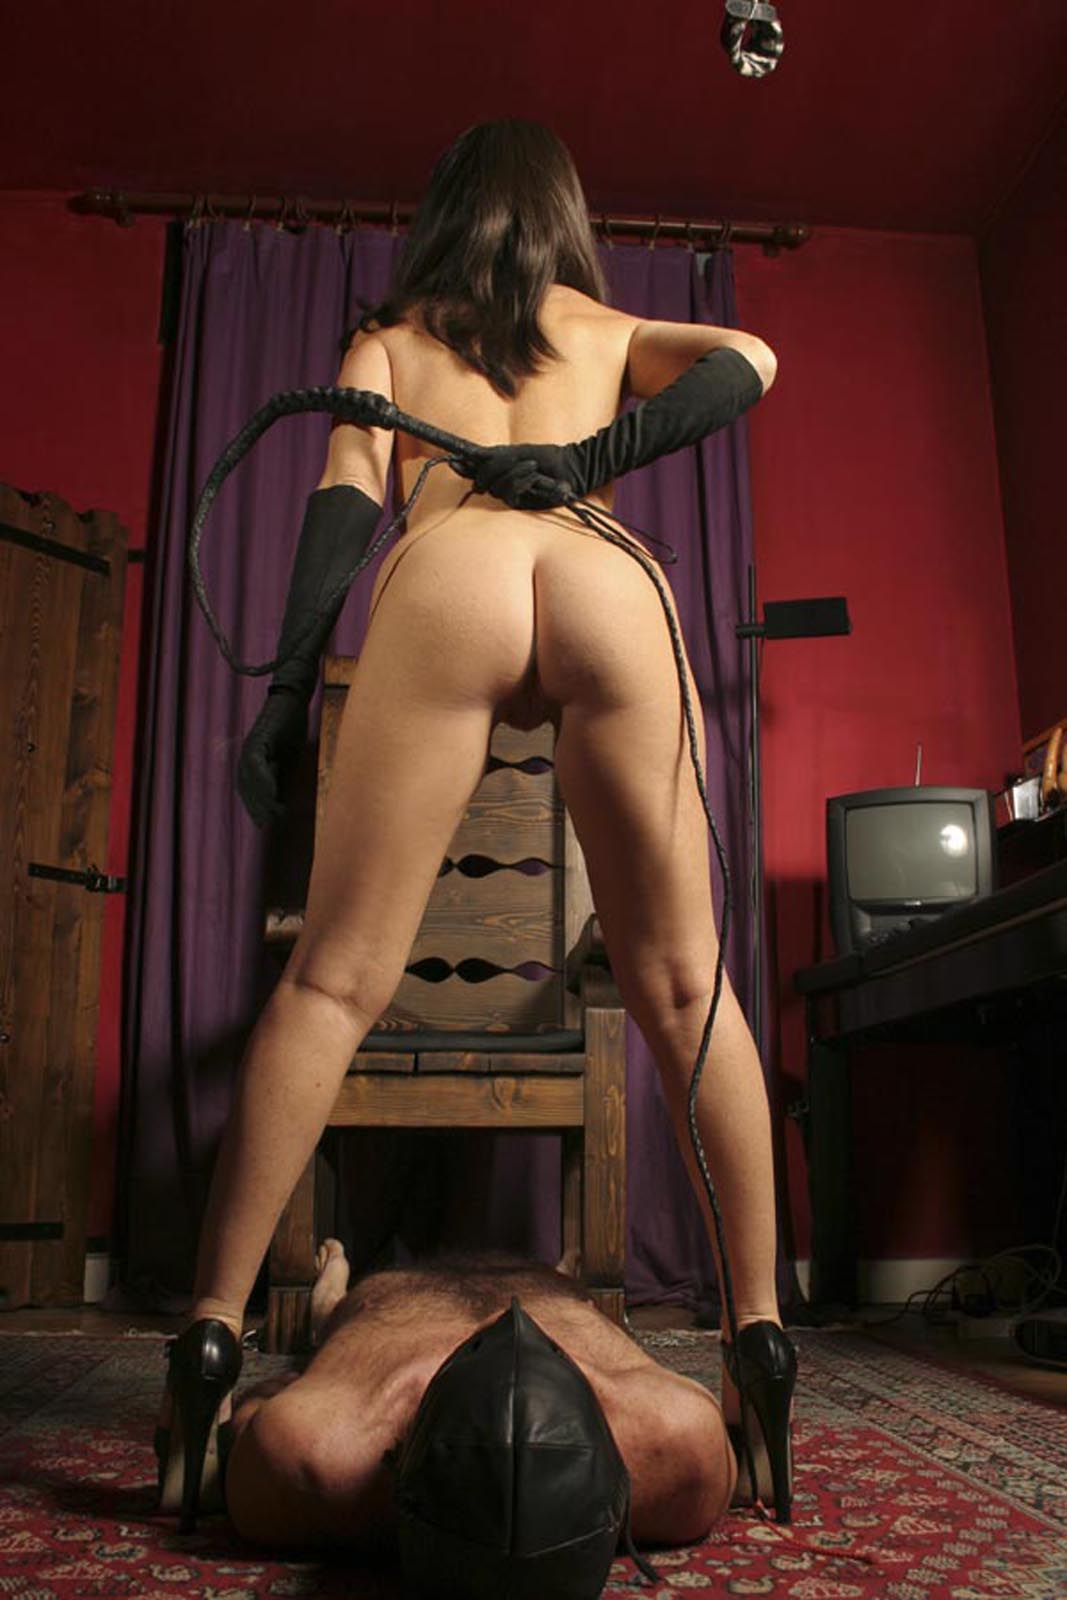 Have quickly mm corporal punishment and domination in ireland words